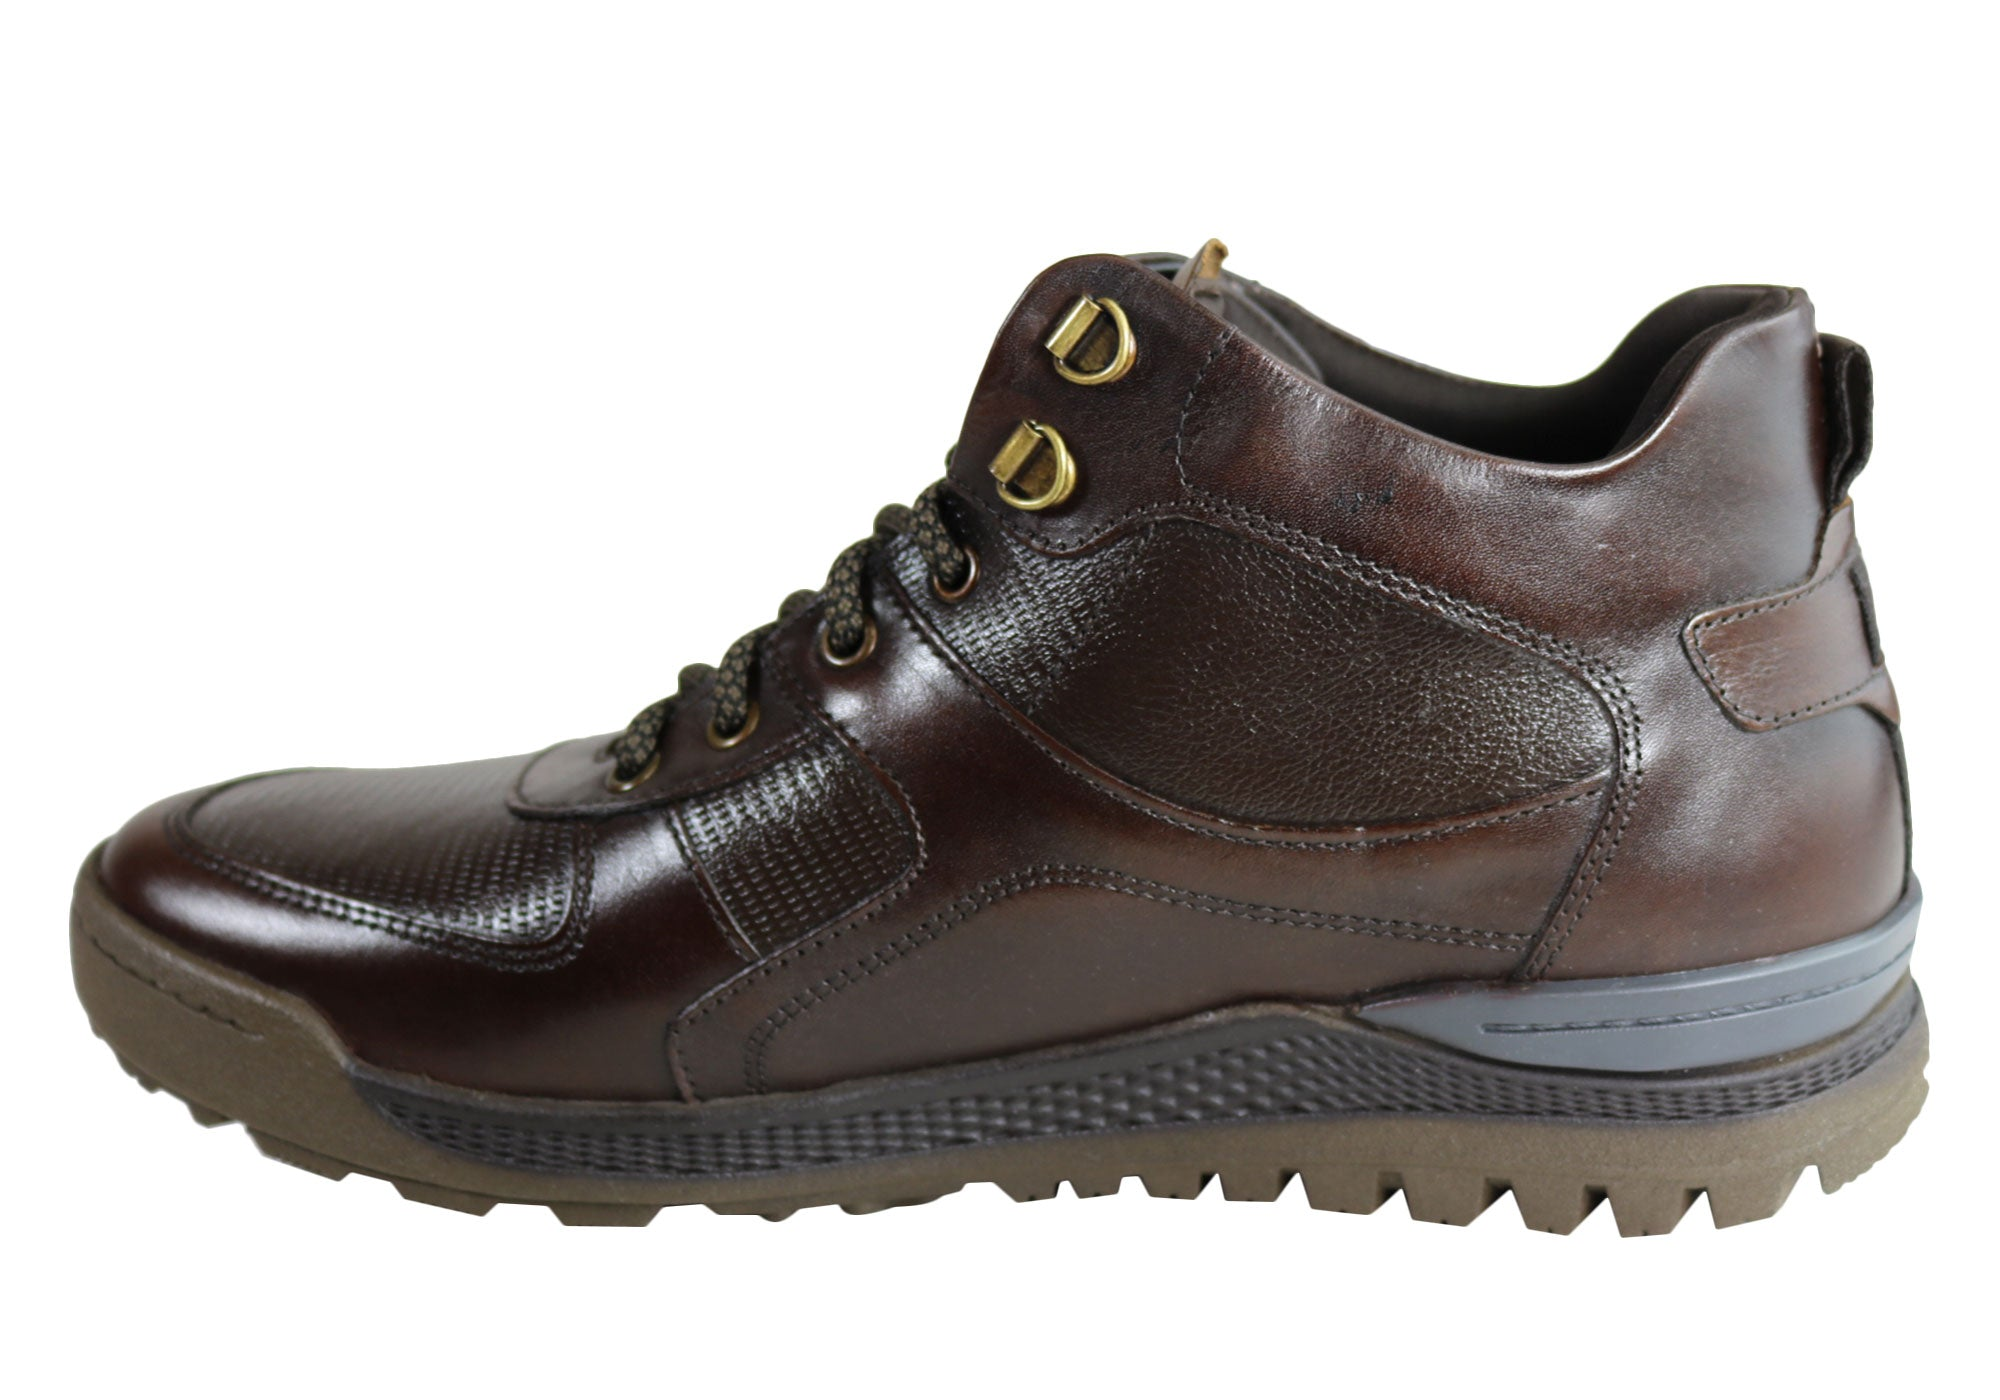 NEW-DEMOCRATA-DIEGO-MENS-LEATHER-LACE-UP-DRESS-BOOTS-MADE-IN-BRAZIL thumbnail 11